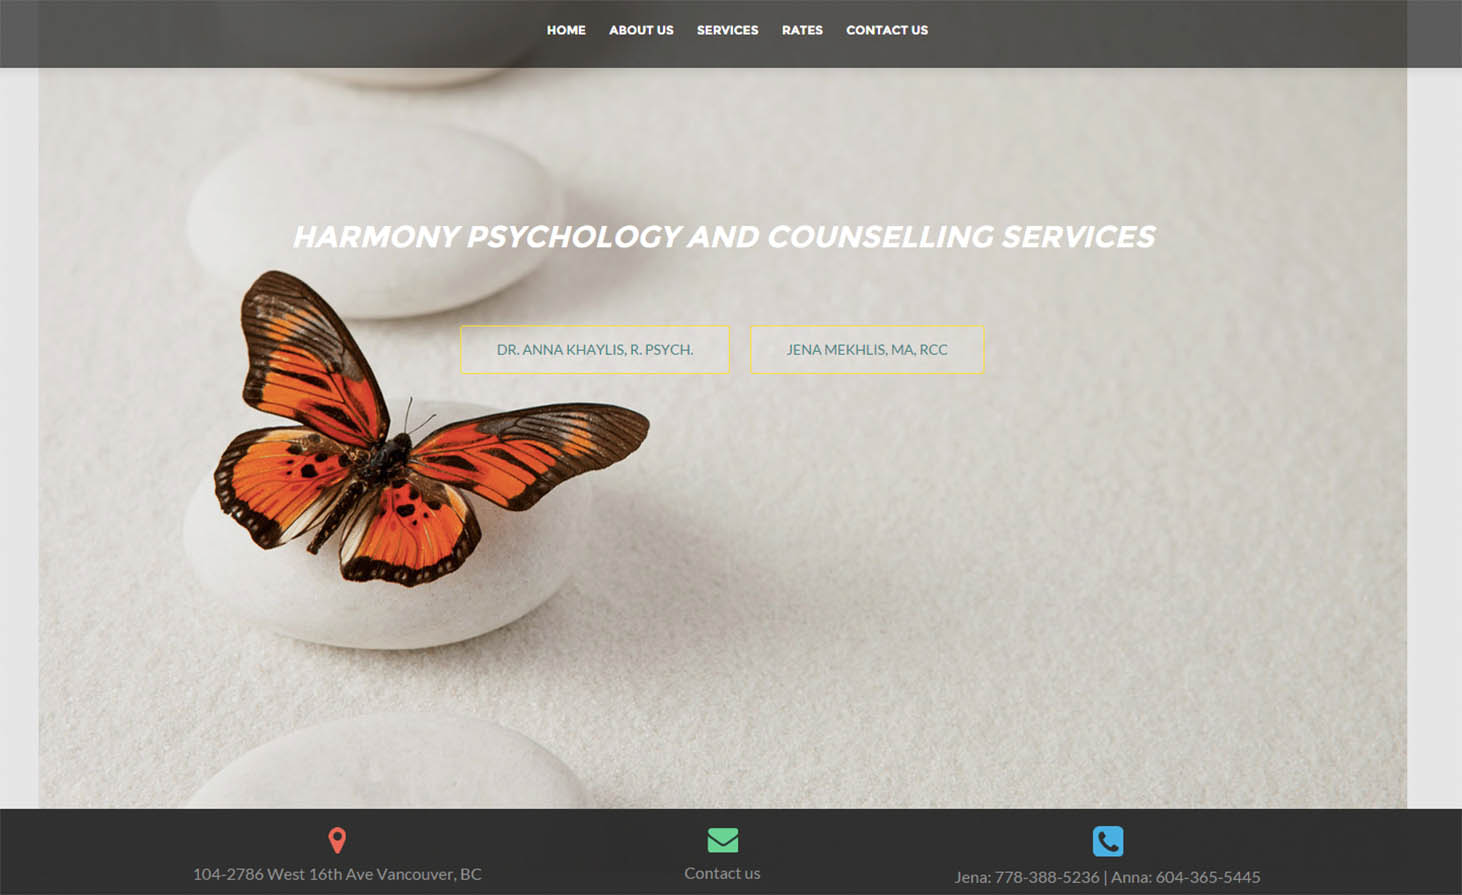 Harmony Psychology